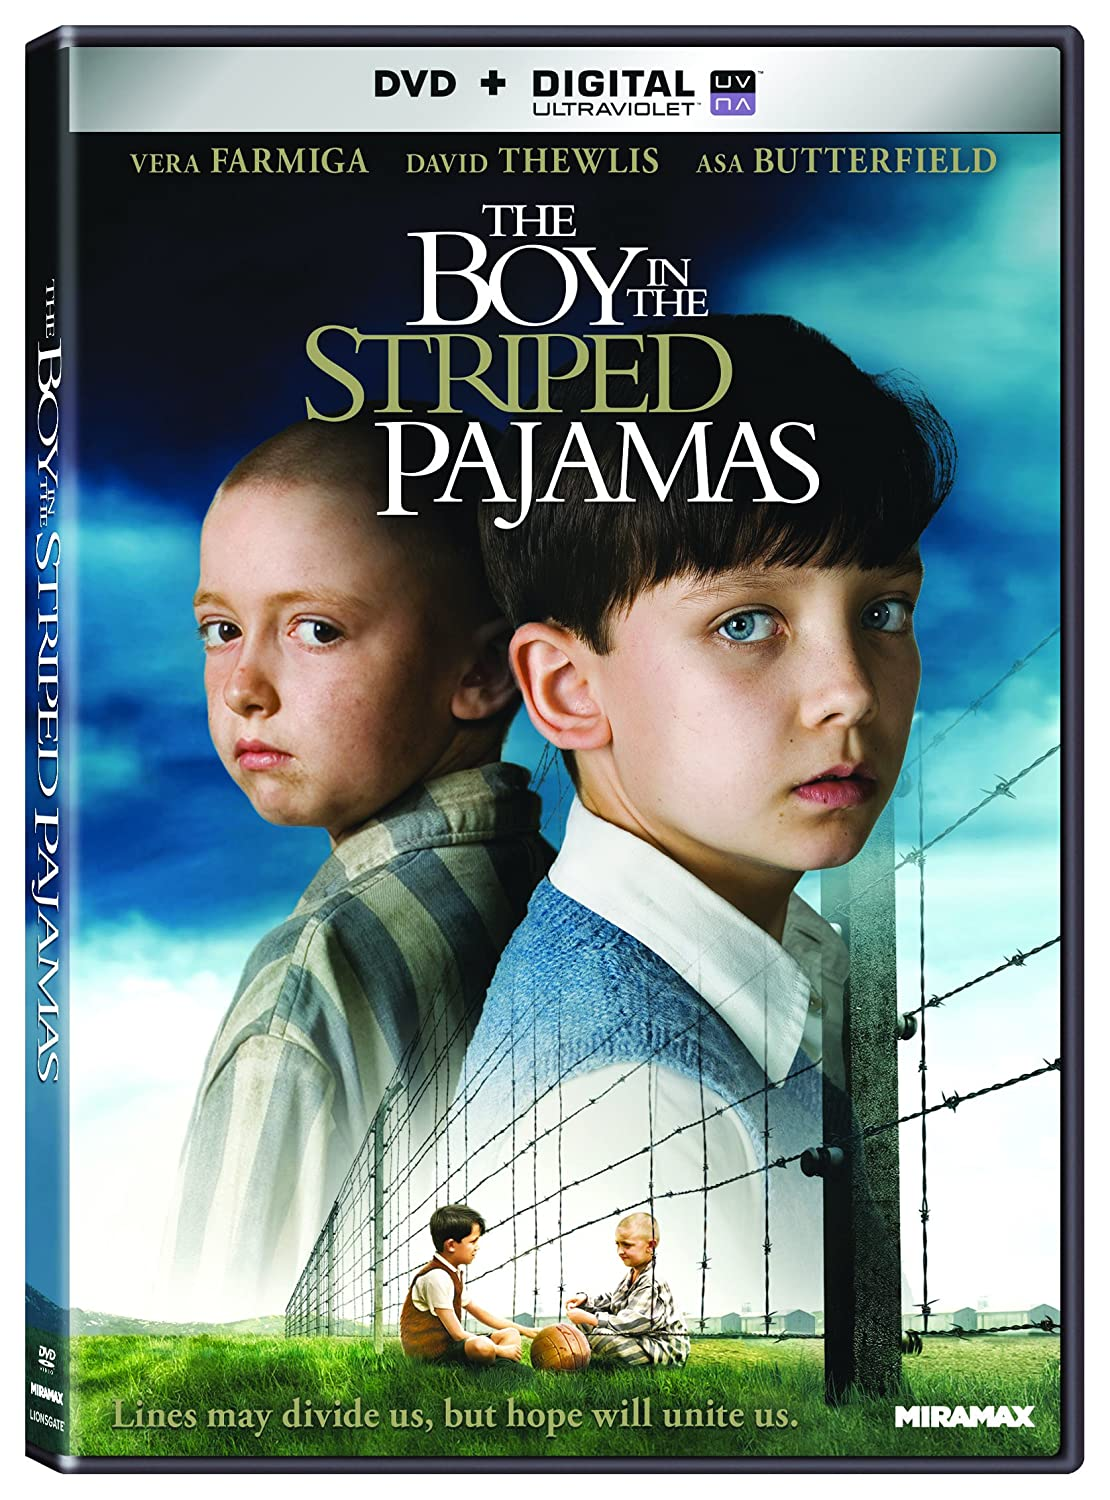 com the boy in the striped pajamas dvd digital asa  com the boy in the striped pajamas dvd digital asa butterfield david thewlis rupert friend zac mattoon o brien domonkos nemeth